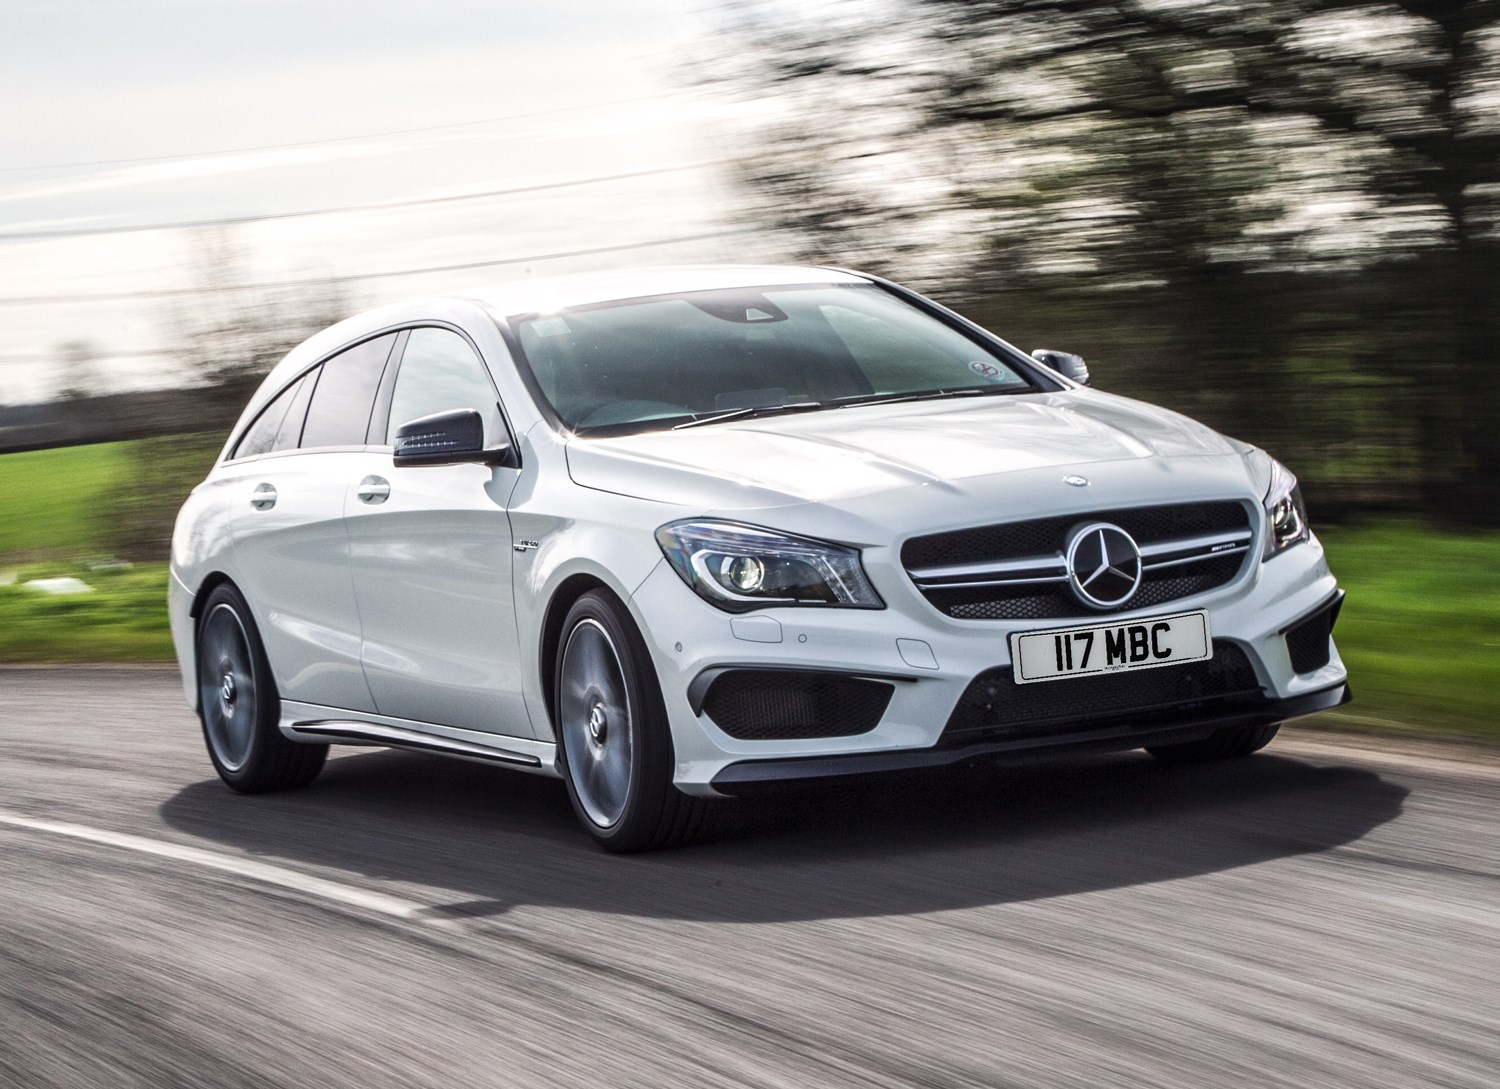 Mercedes benz cla class amg review 2013 2016 parkers for How much is a mercedes benz amg